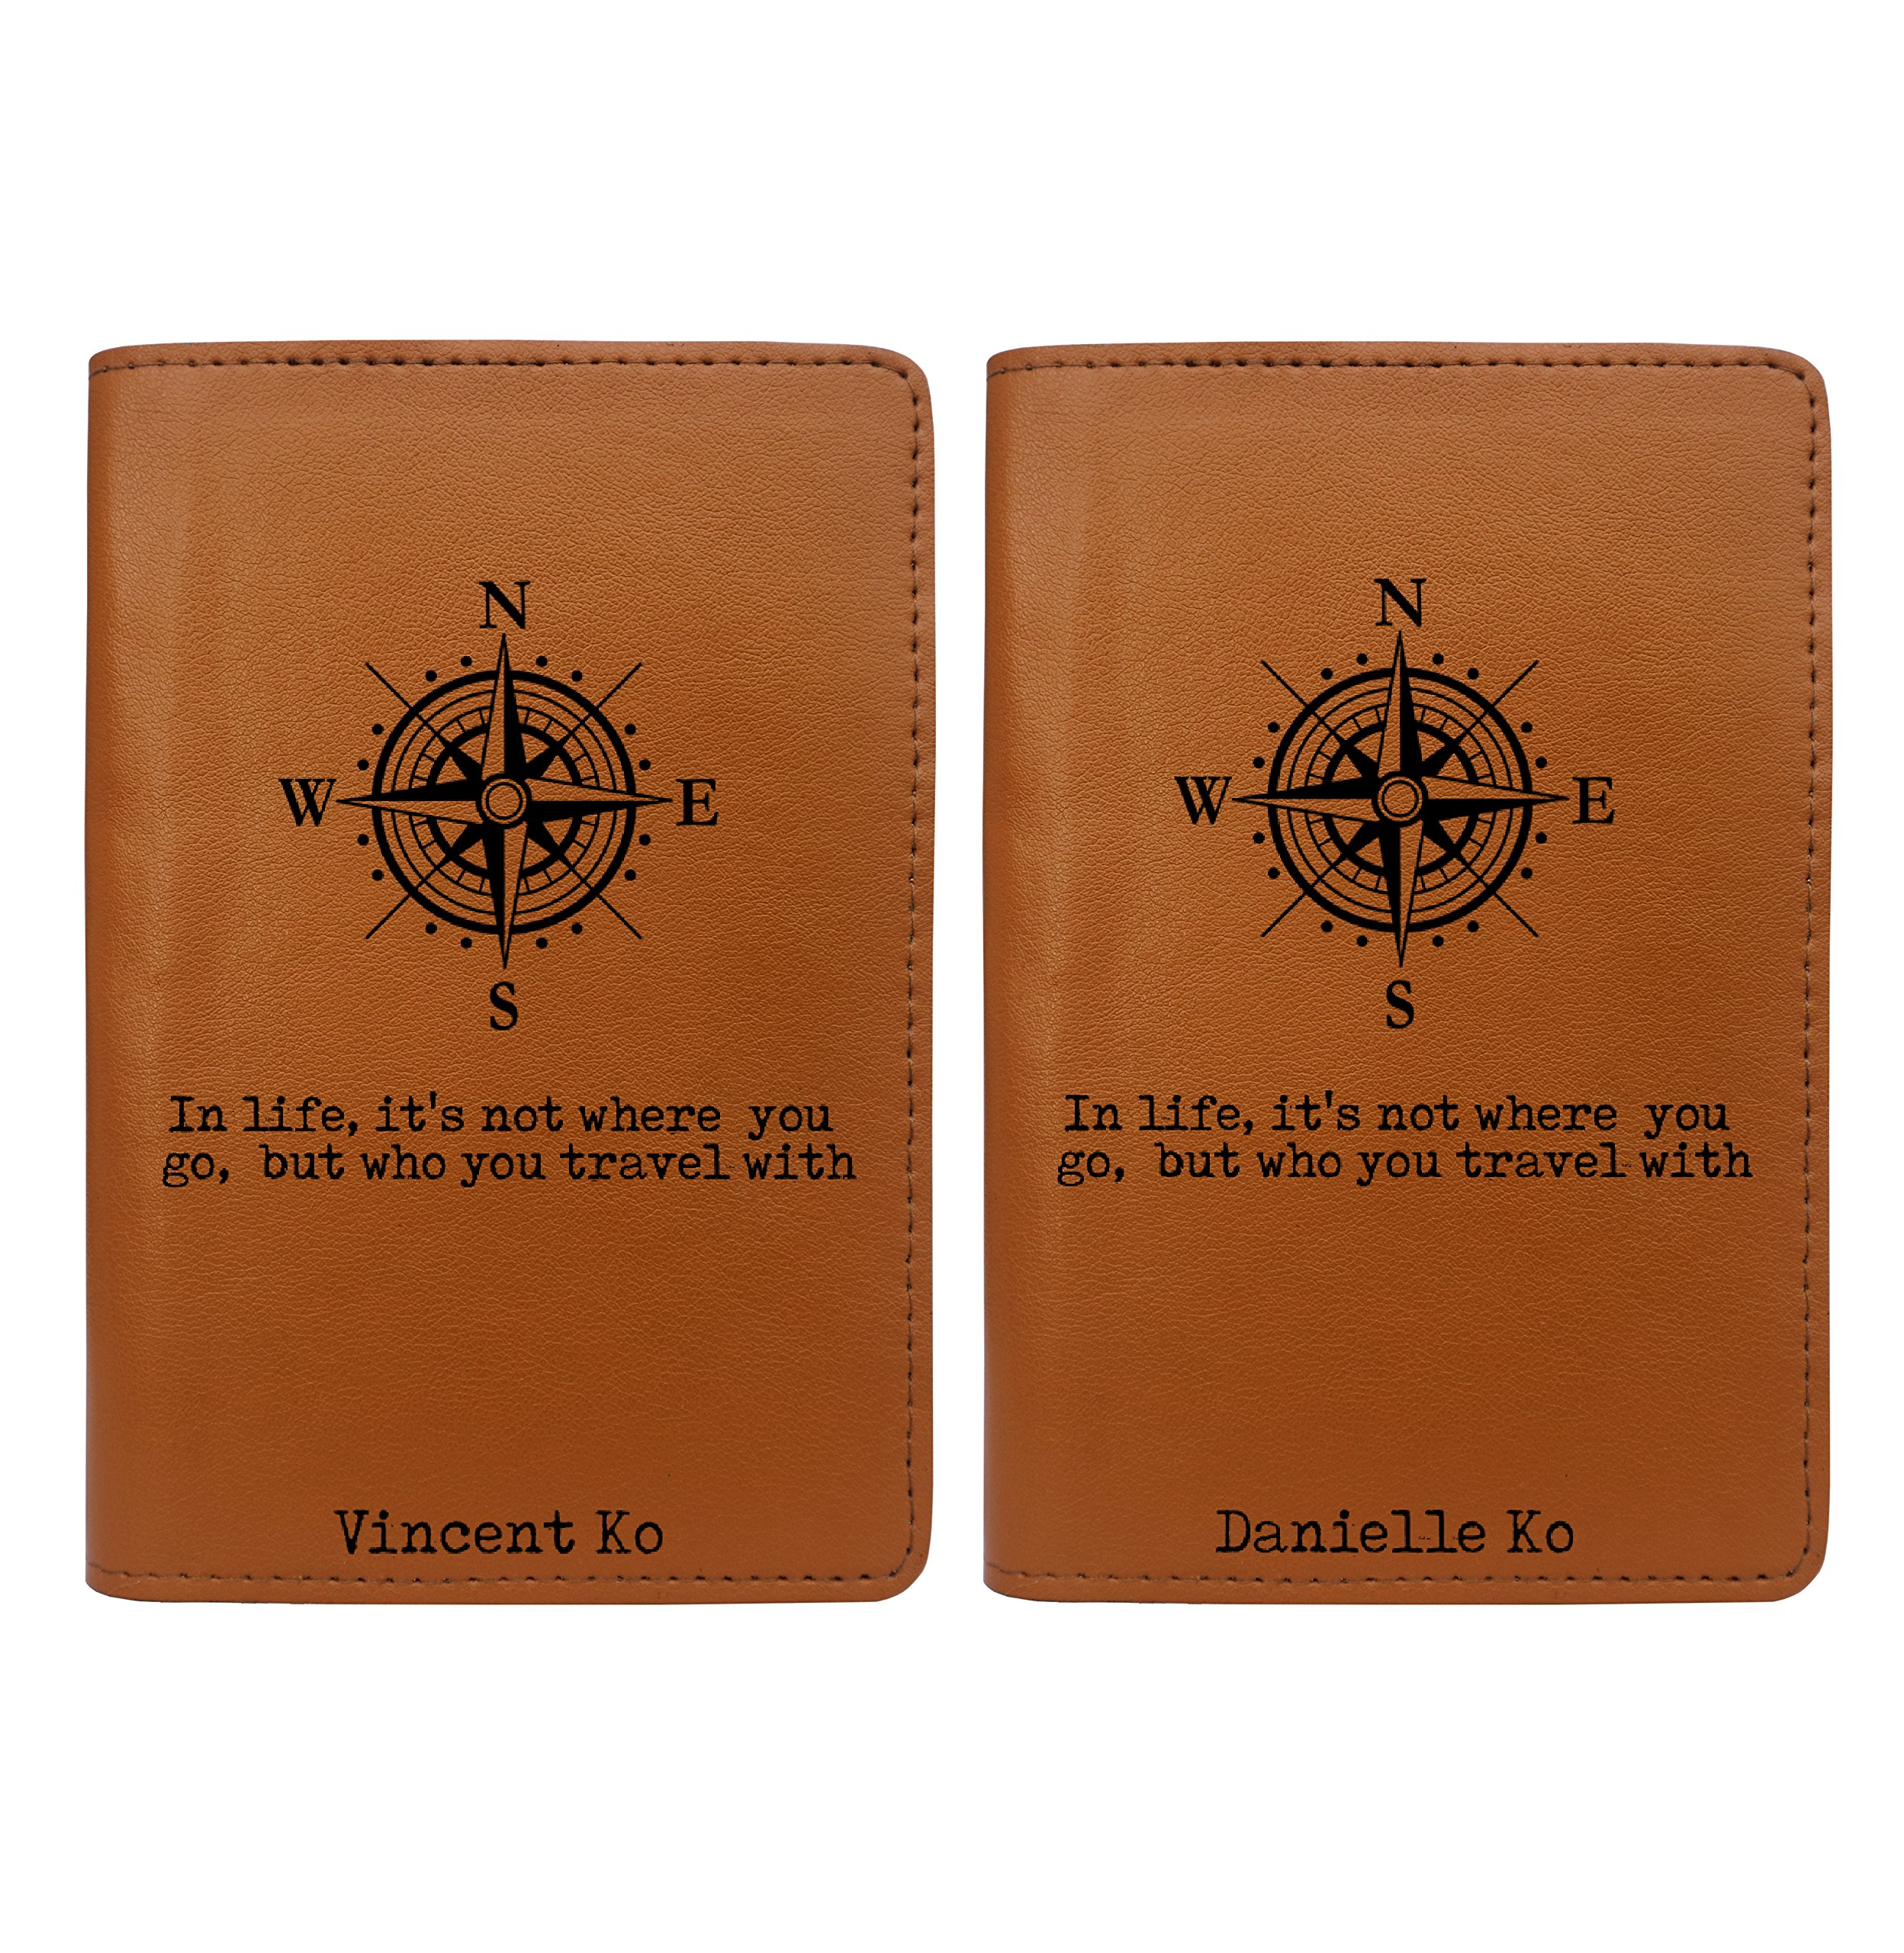 Couple Passport Holder - Personalized Passport Cover - Set of 2 - Wedding Gift by With Love From Julie